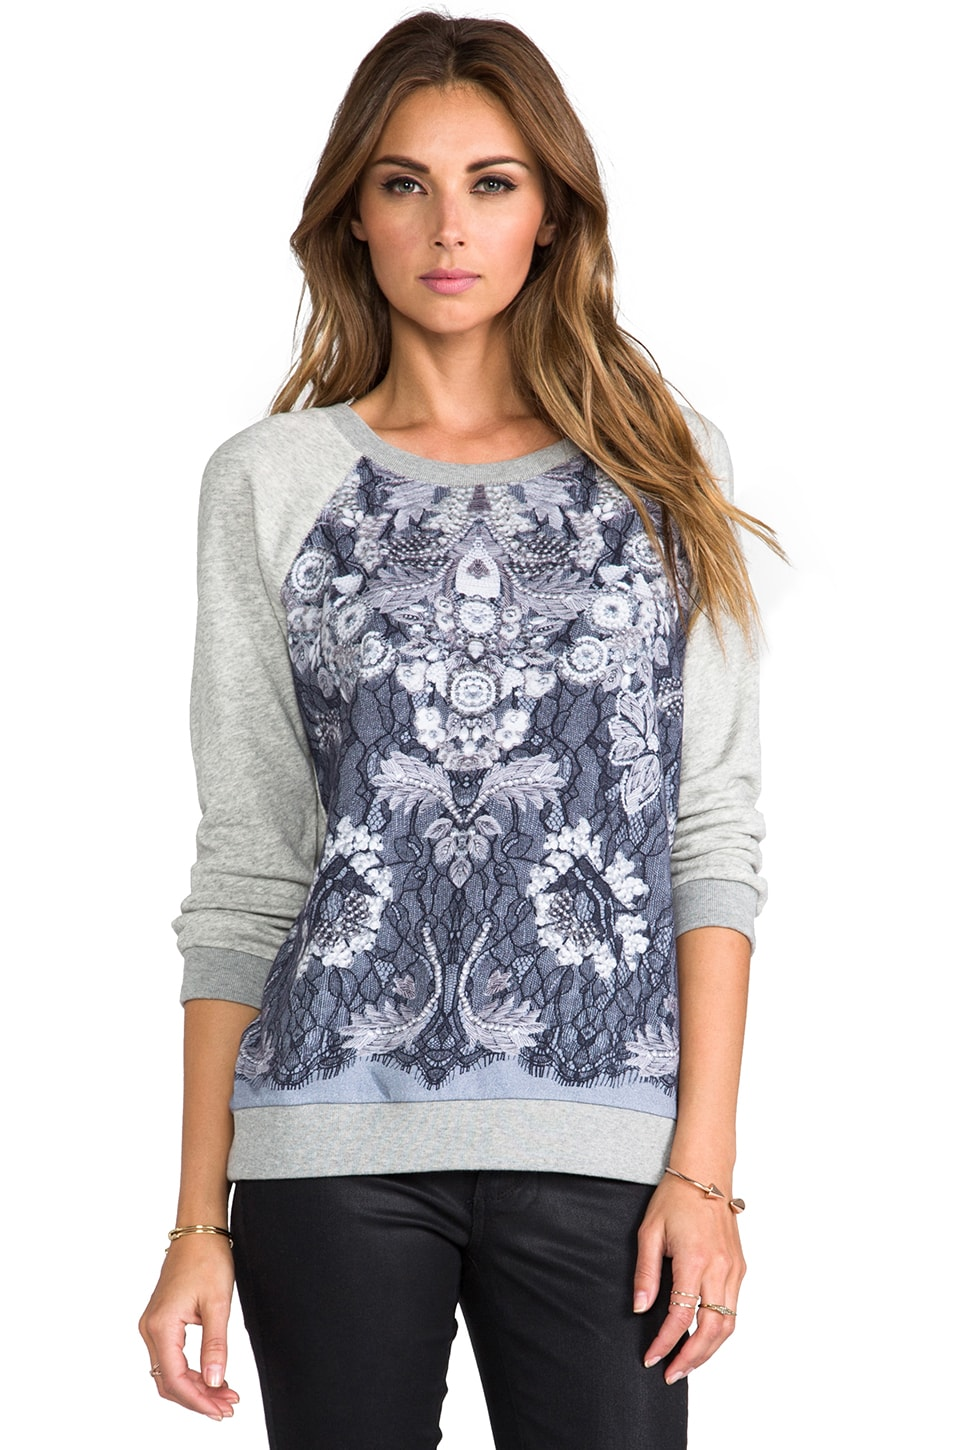 Marc by Marc Jacobs Lena Printed Sweatshirt in Light Grey Melange